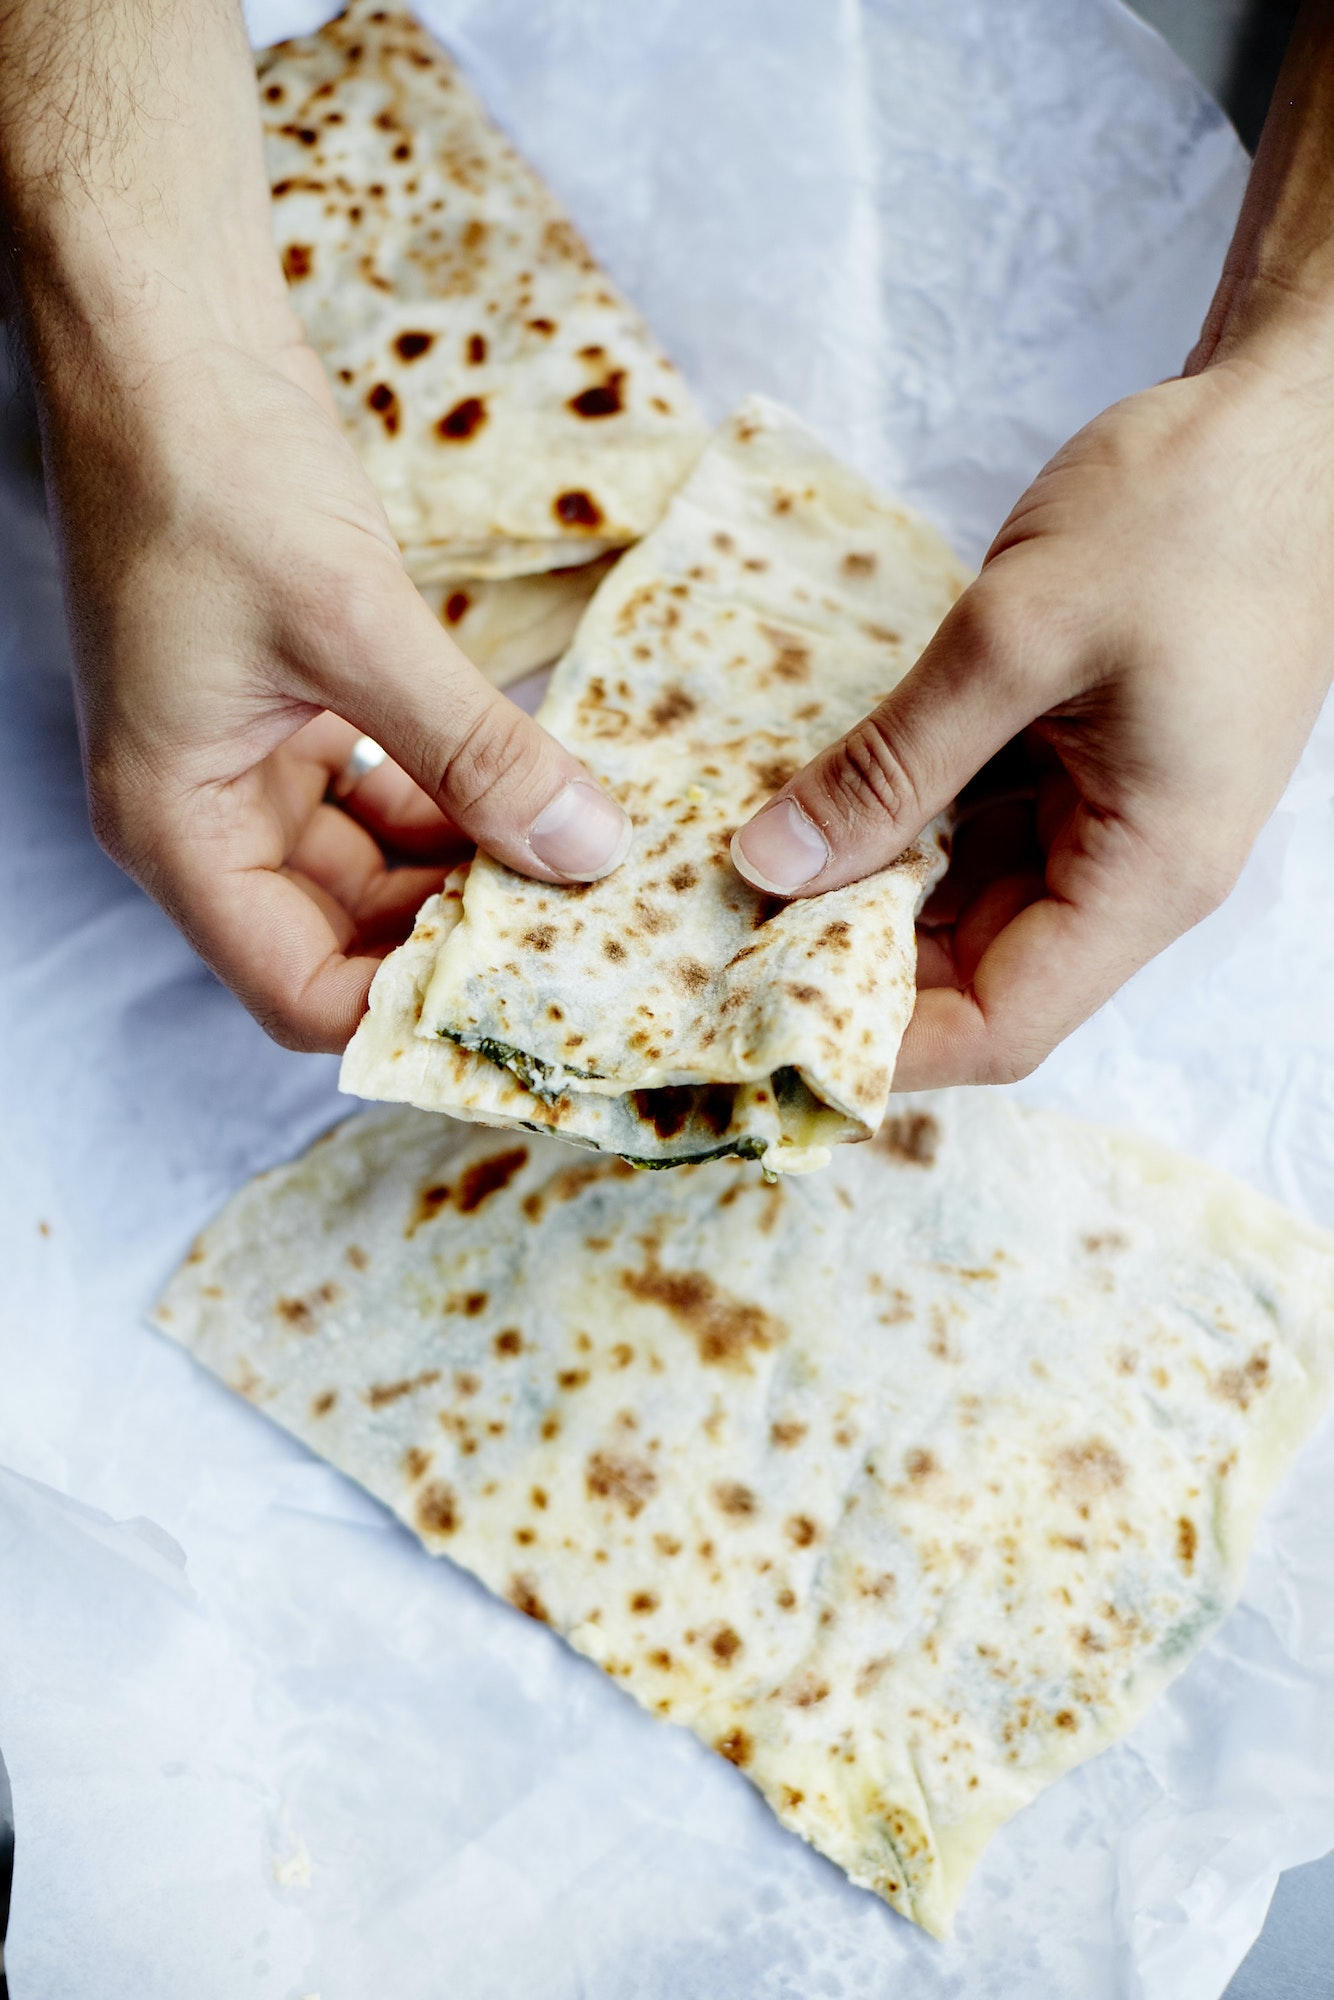 A trip through Melbourne's dining scene turns up a spinach and cheese Turkish gözleme.